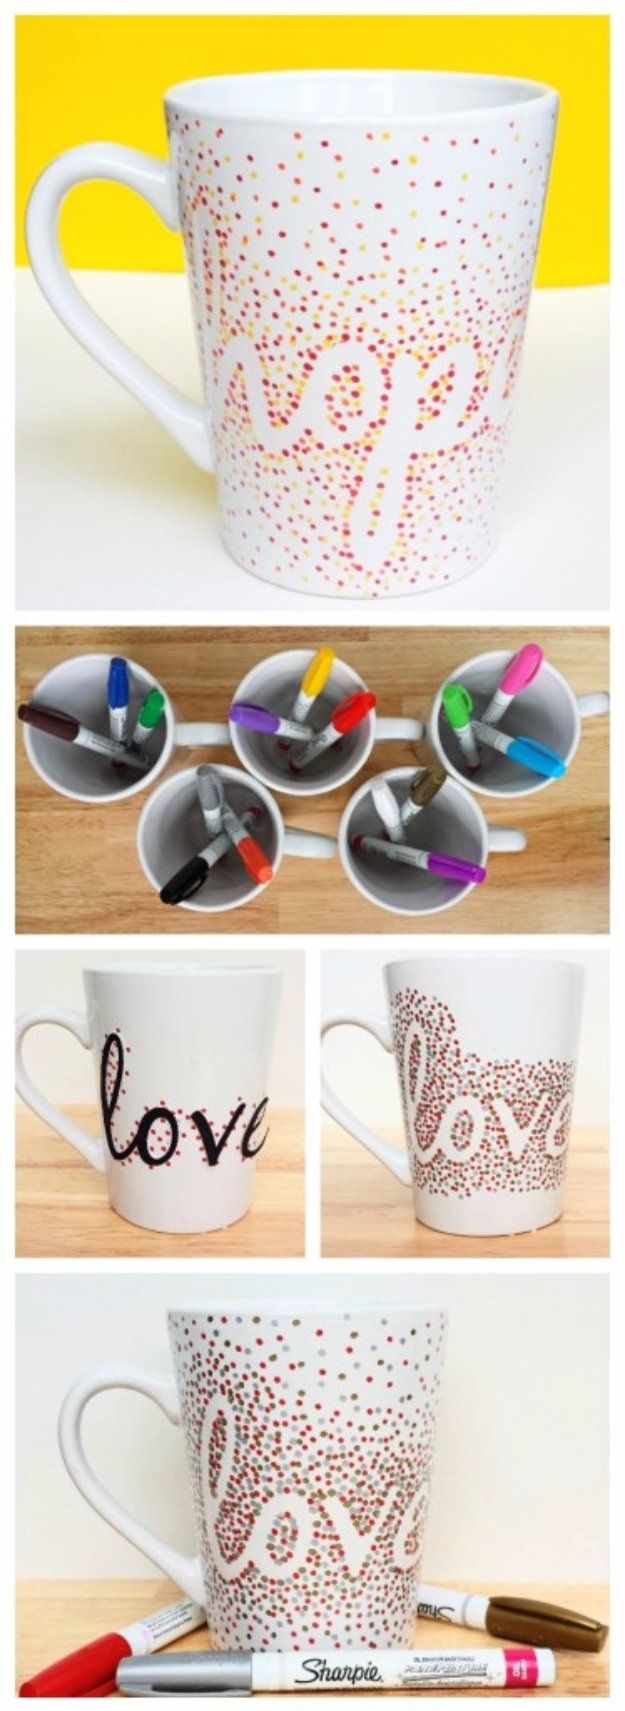 25 best ideas about easy crafts on pinterest easy diy for Most popular diy crafts